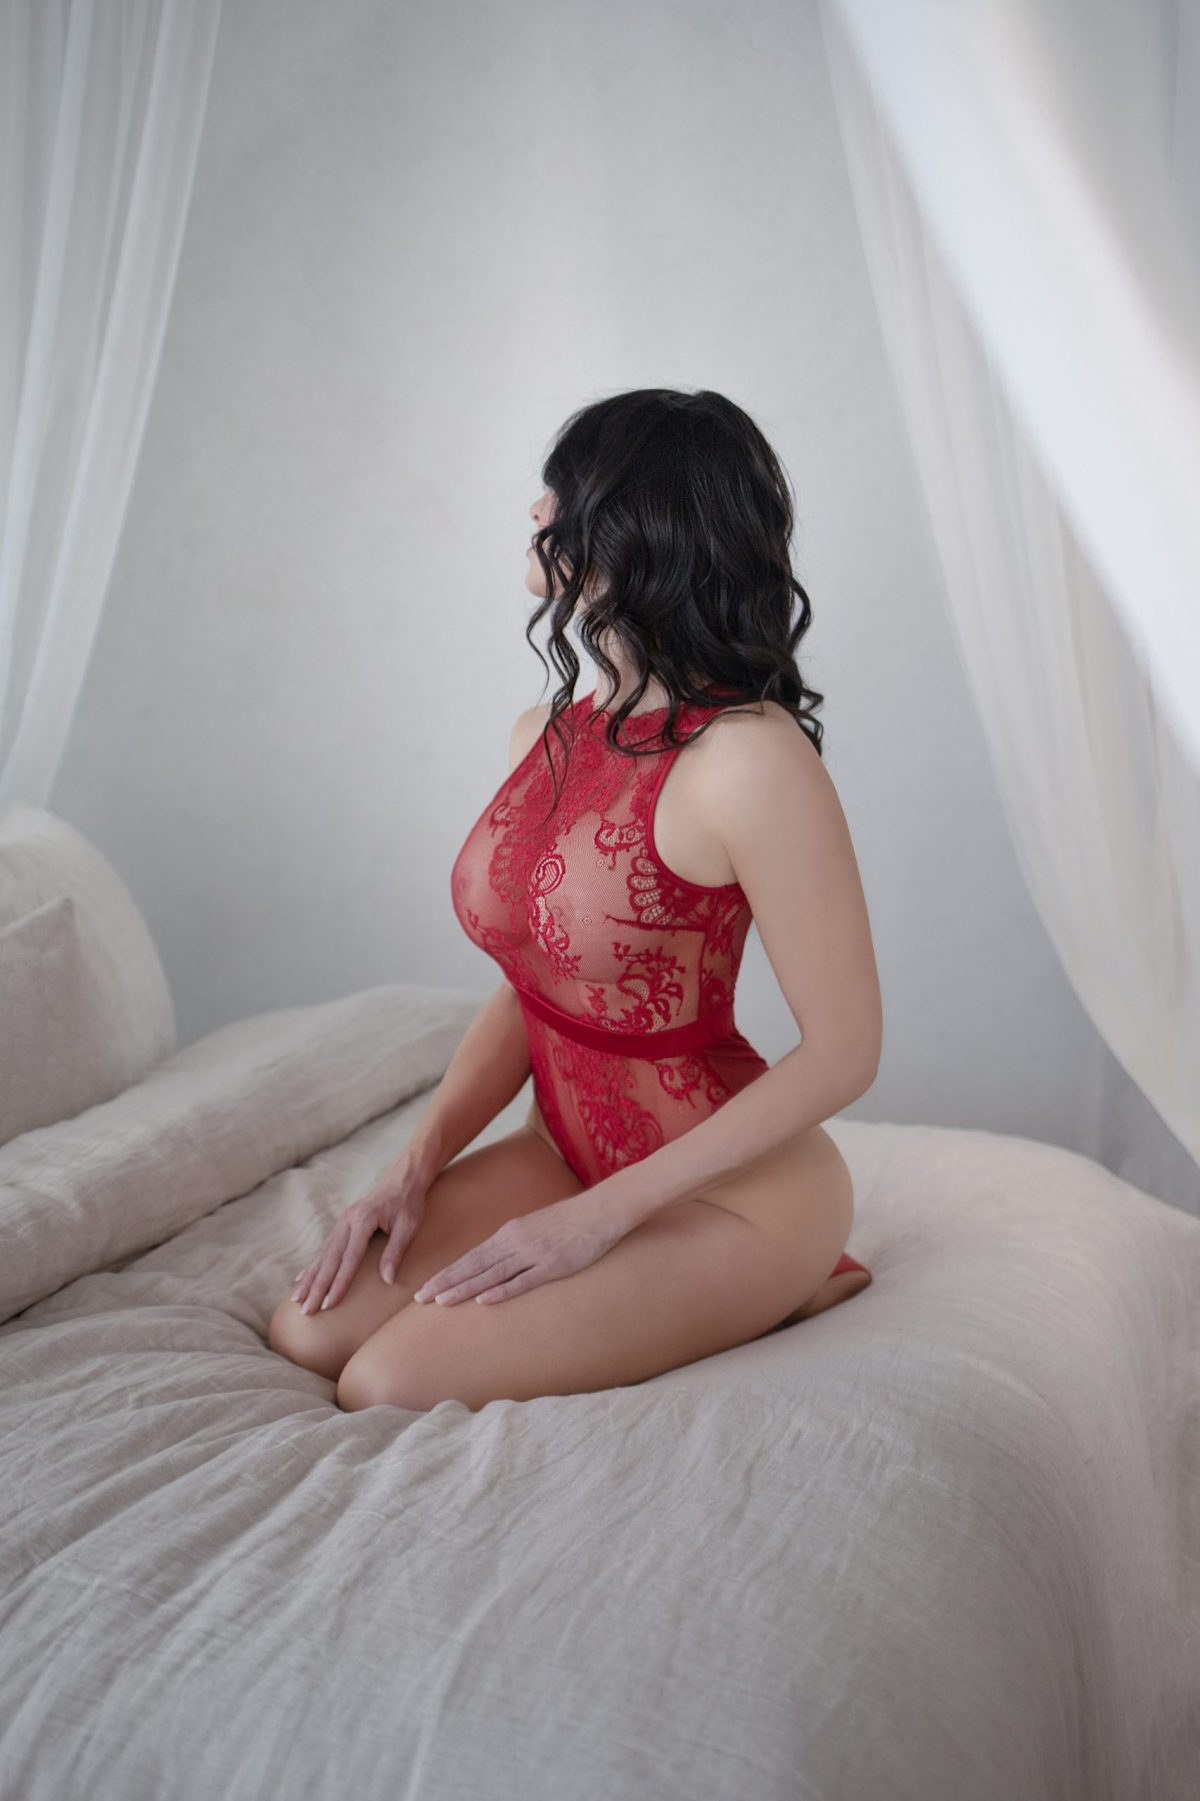 Toronto escorts companion upscale Rebecca Interests Duo Couple-friendly Disability-friendly Non-smoking Age Mature Figure Slender Curvy Tall Enhanced Raven-Haired Brunette European Tattoos Large Arrival New Photos